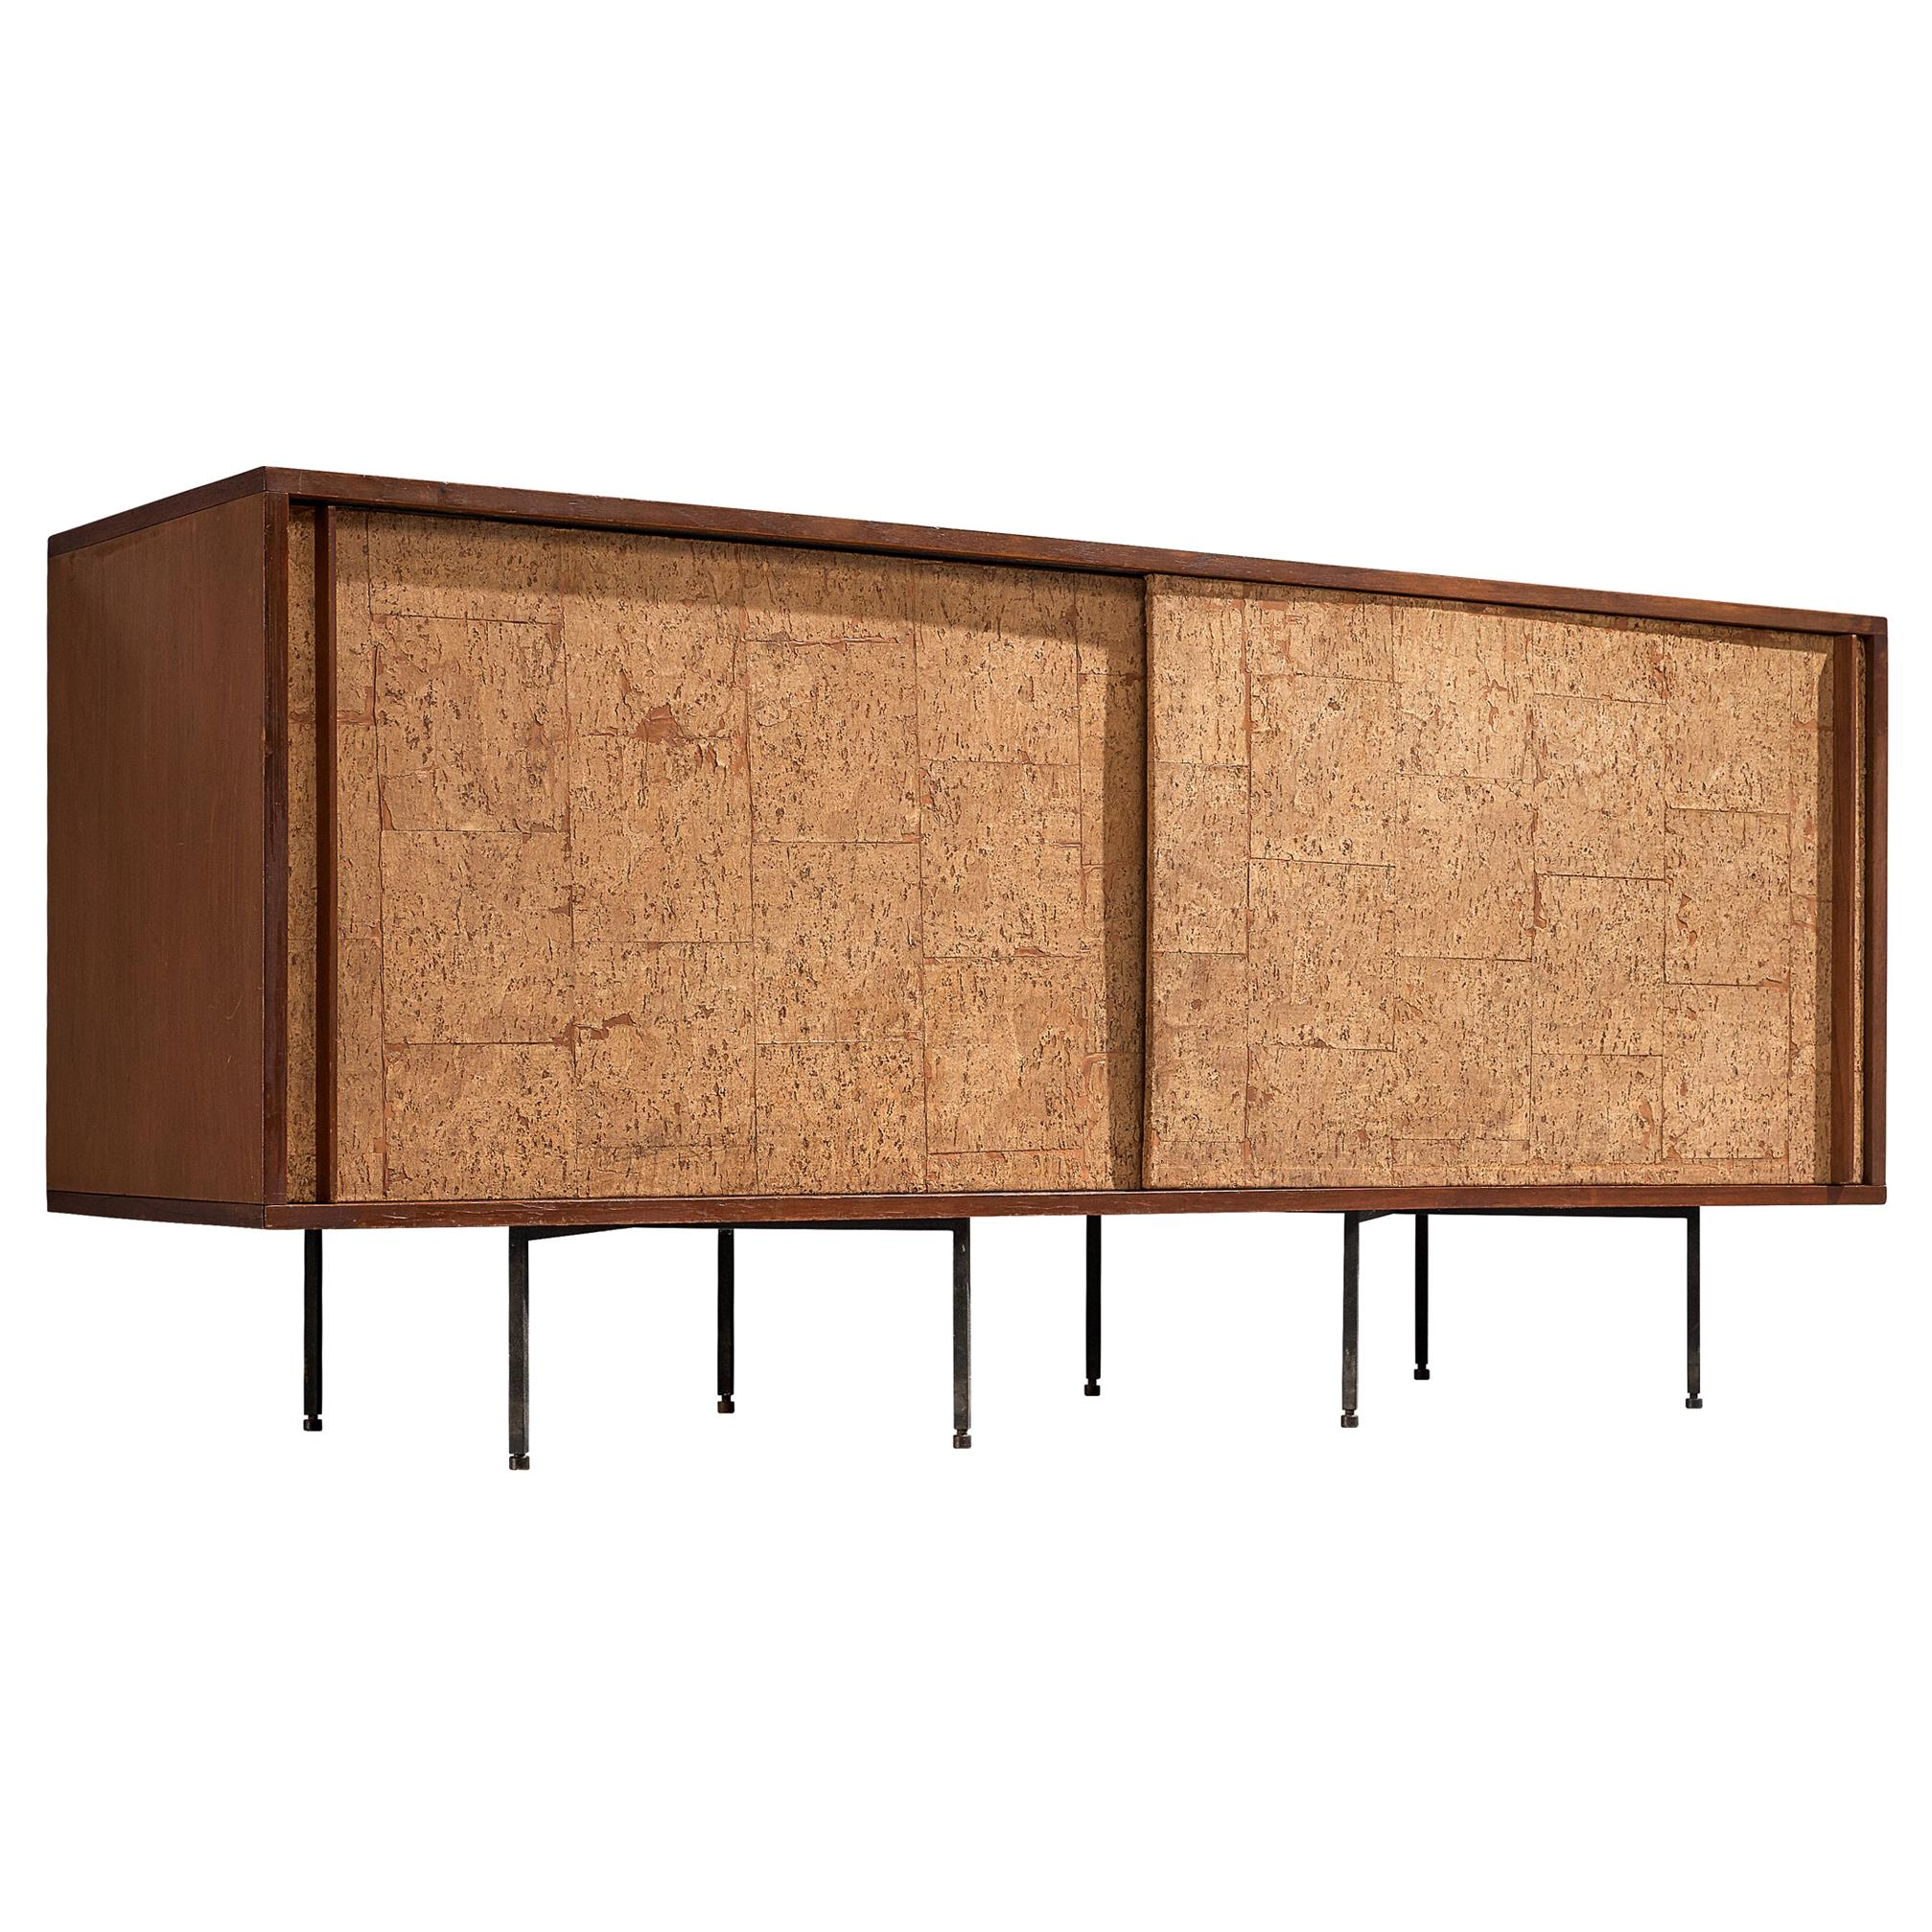 Antique Vintage Mid Century And Modern Furniture 531896 For